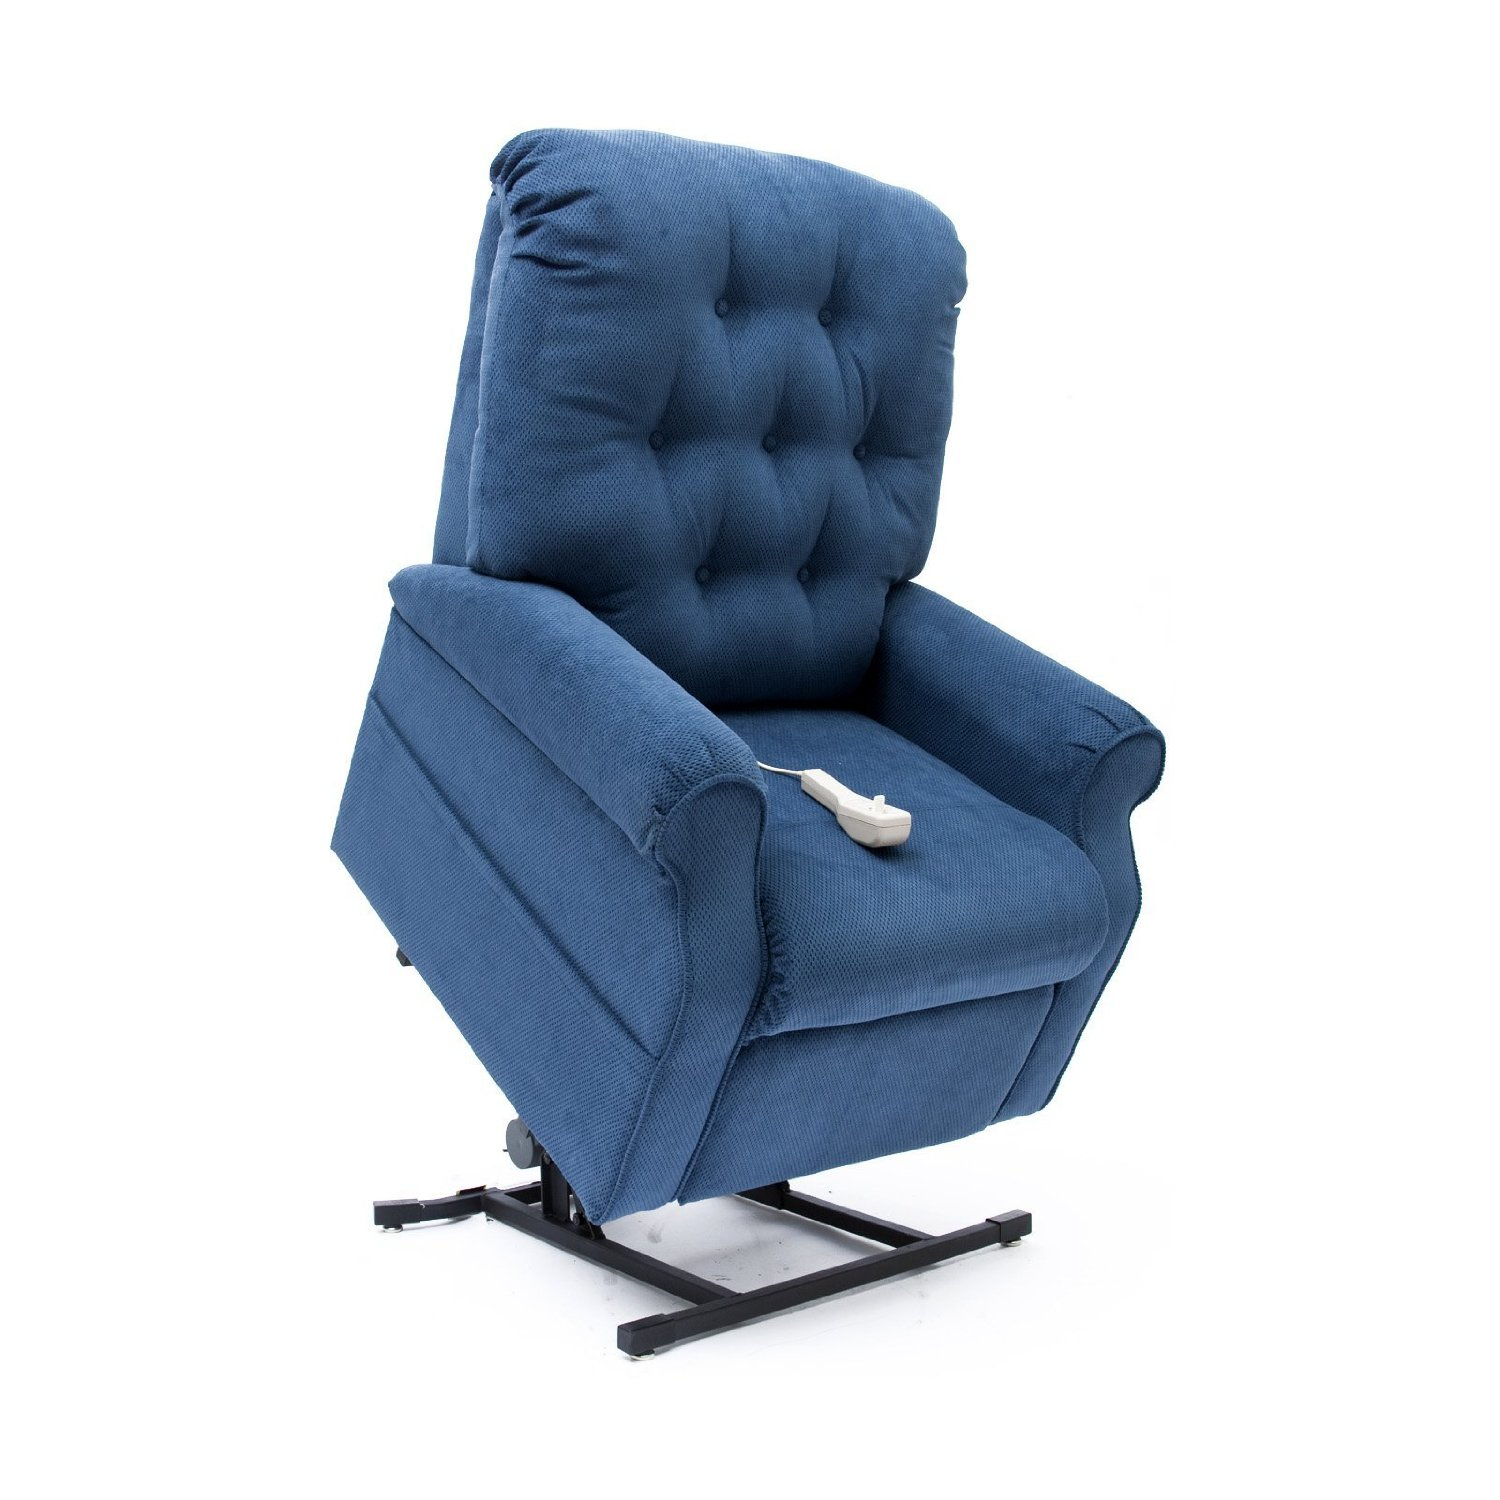 Lift Chairs Recliners New Navy Blue Easy Comfort Lc 200 Power Electric Lift